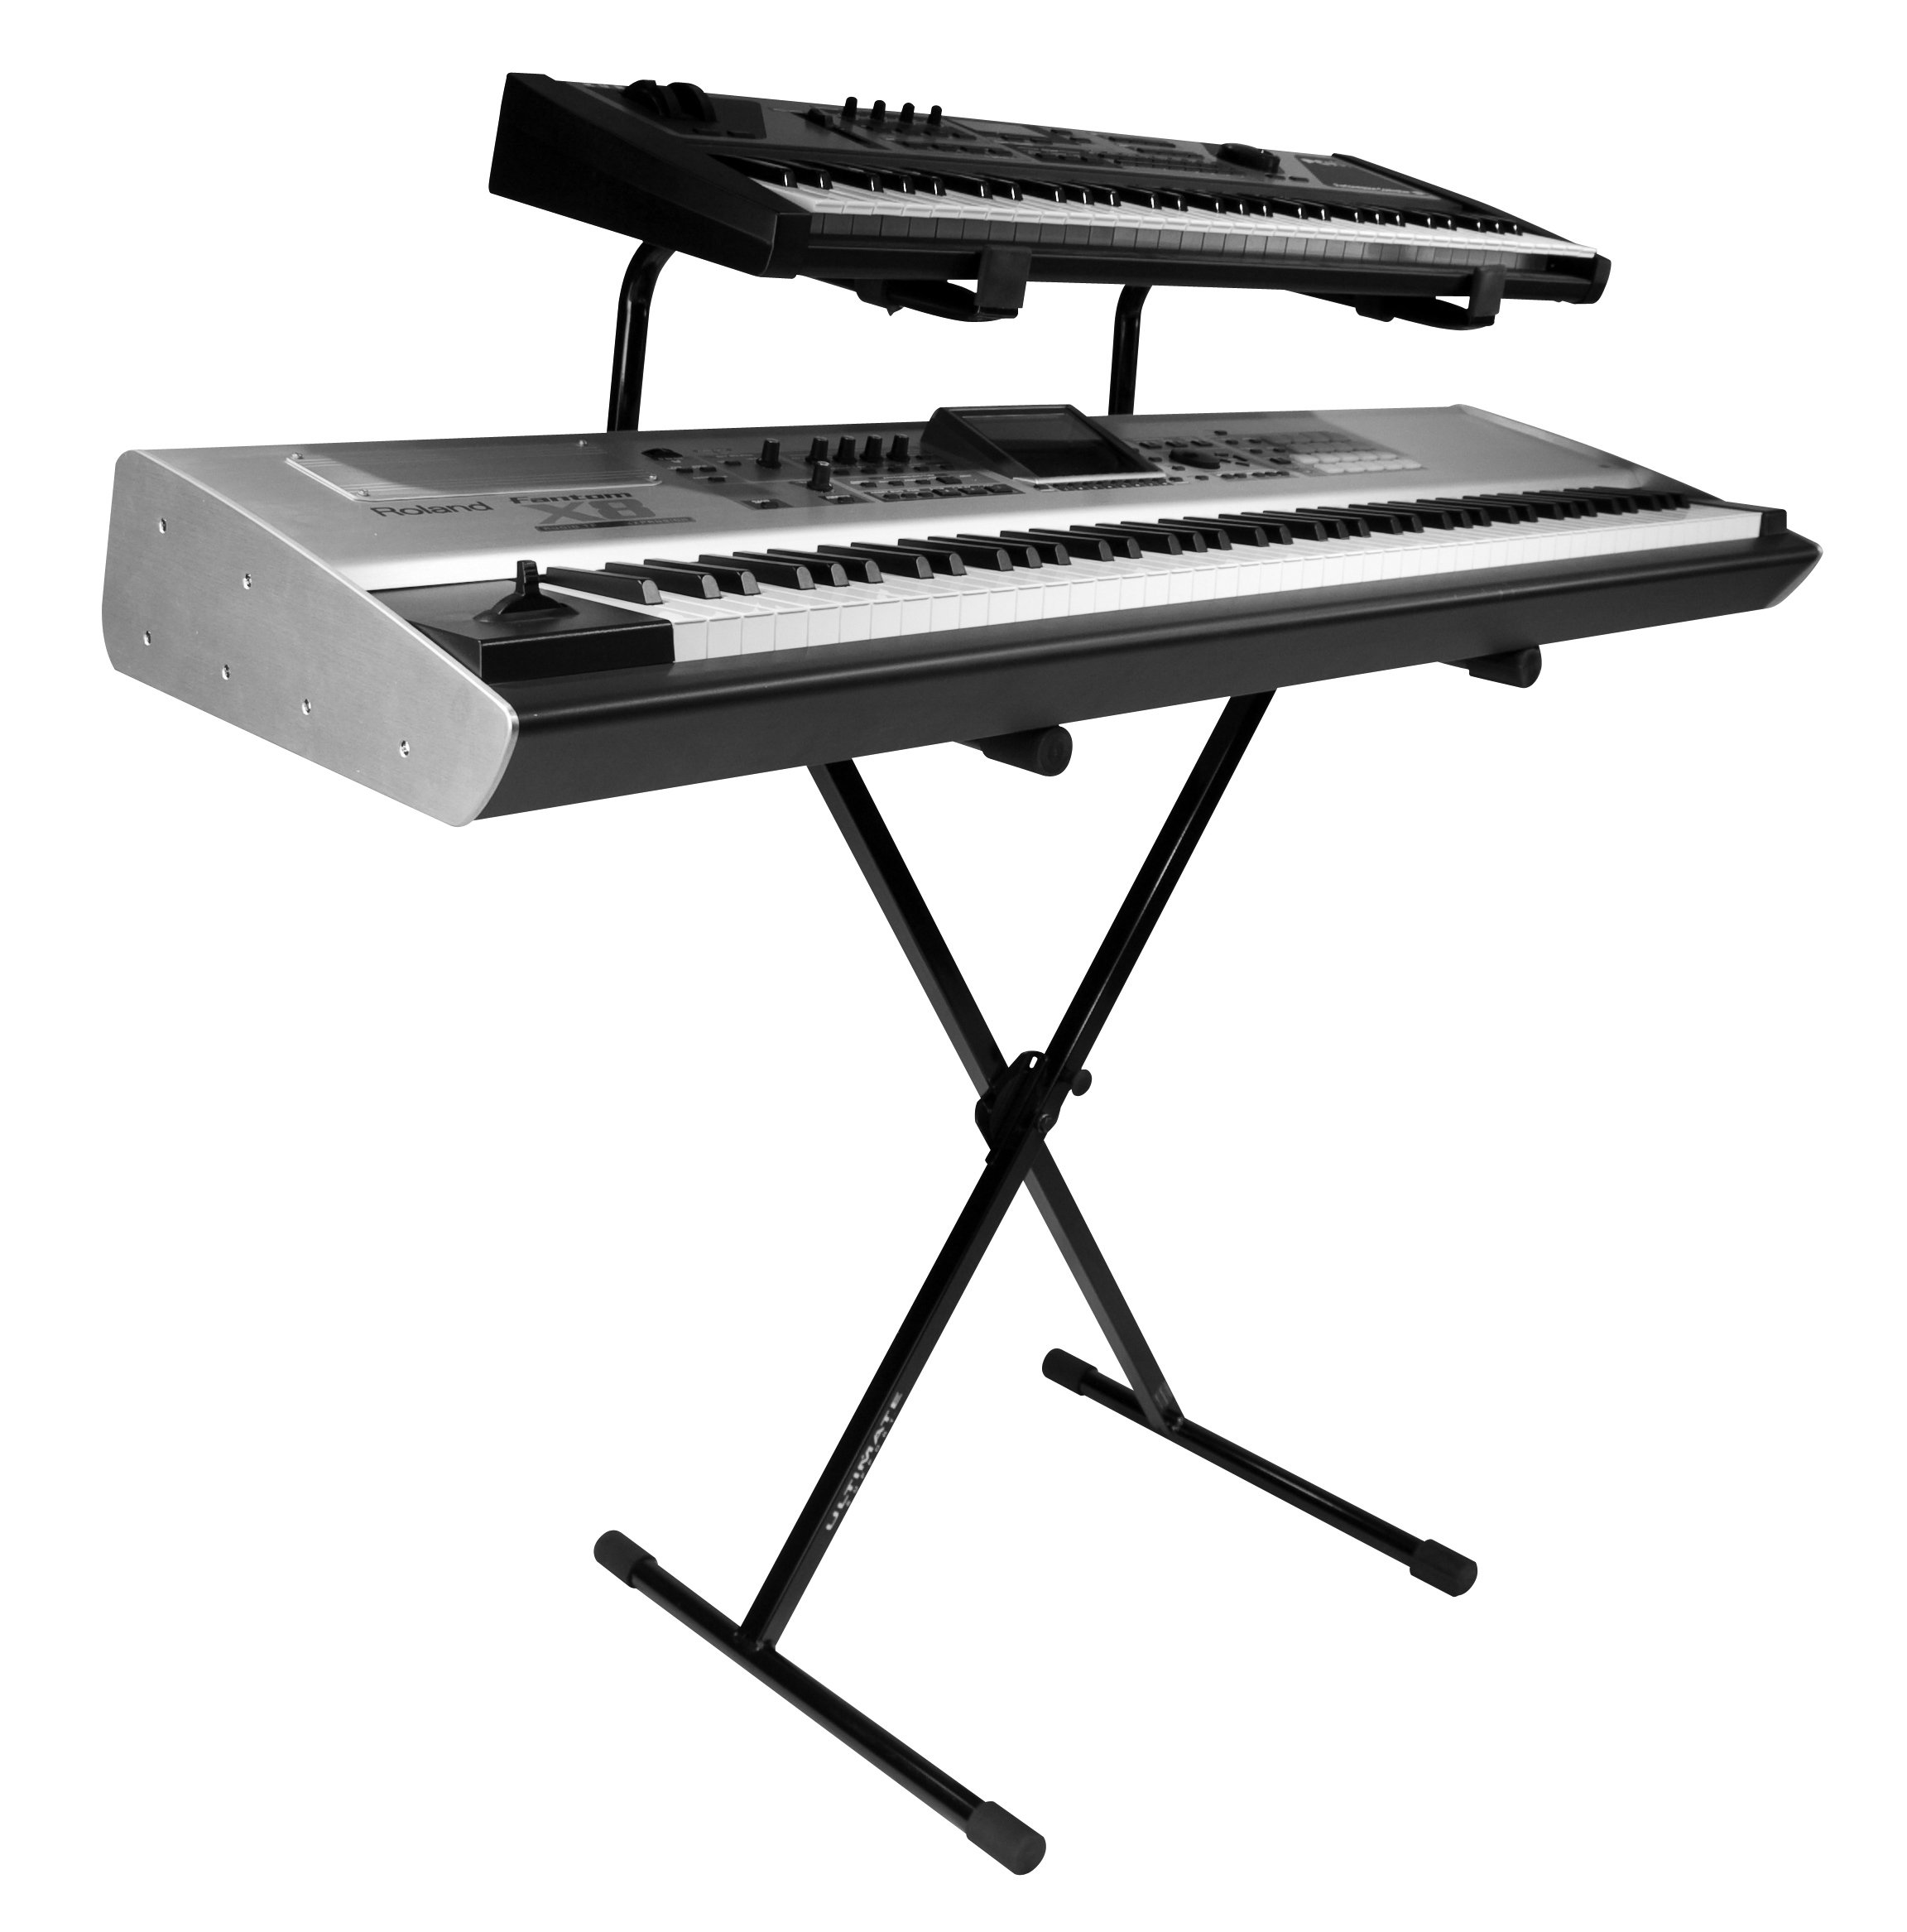 Ultimate Support IQ-1200 Two Tier X-style Single Braced Keyboard Stand with 5 Height Settings, Stabilizing End Caps